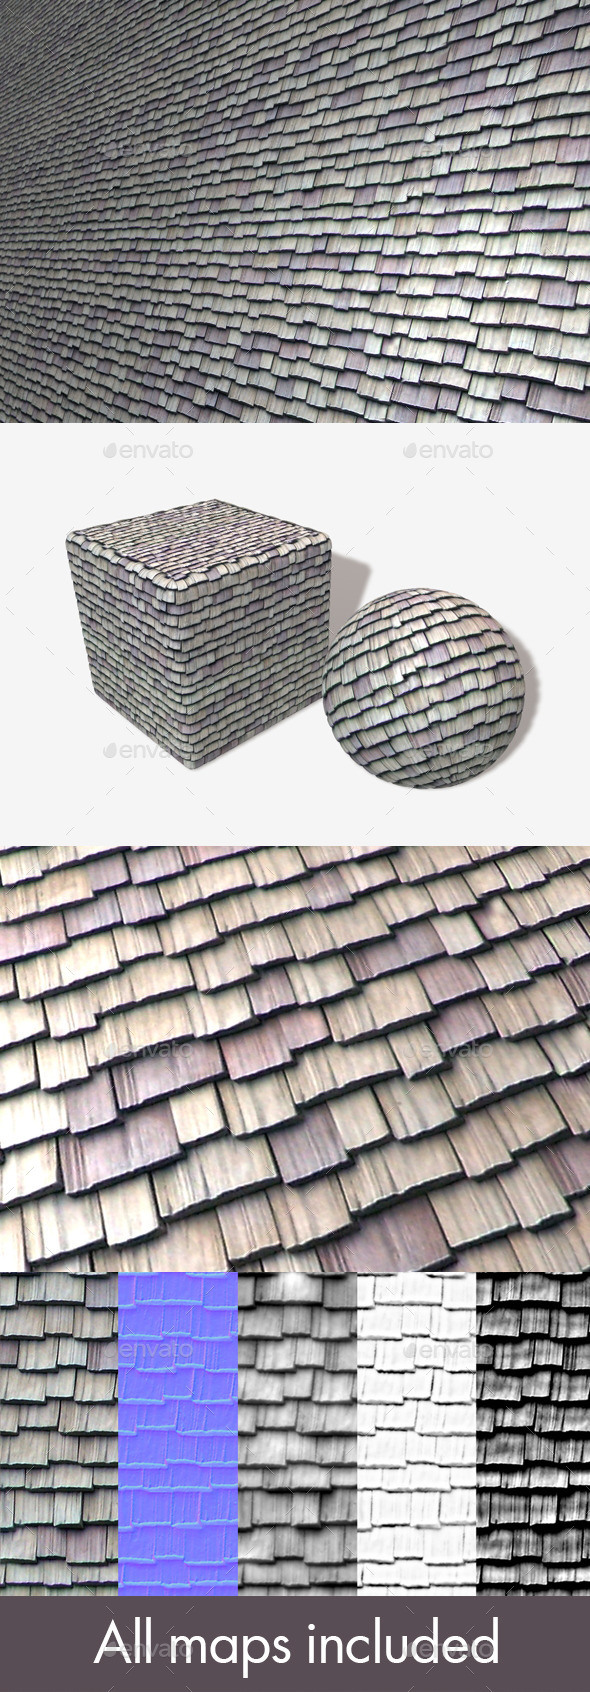 3DOcean Wooden Roof Tiles 11351807